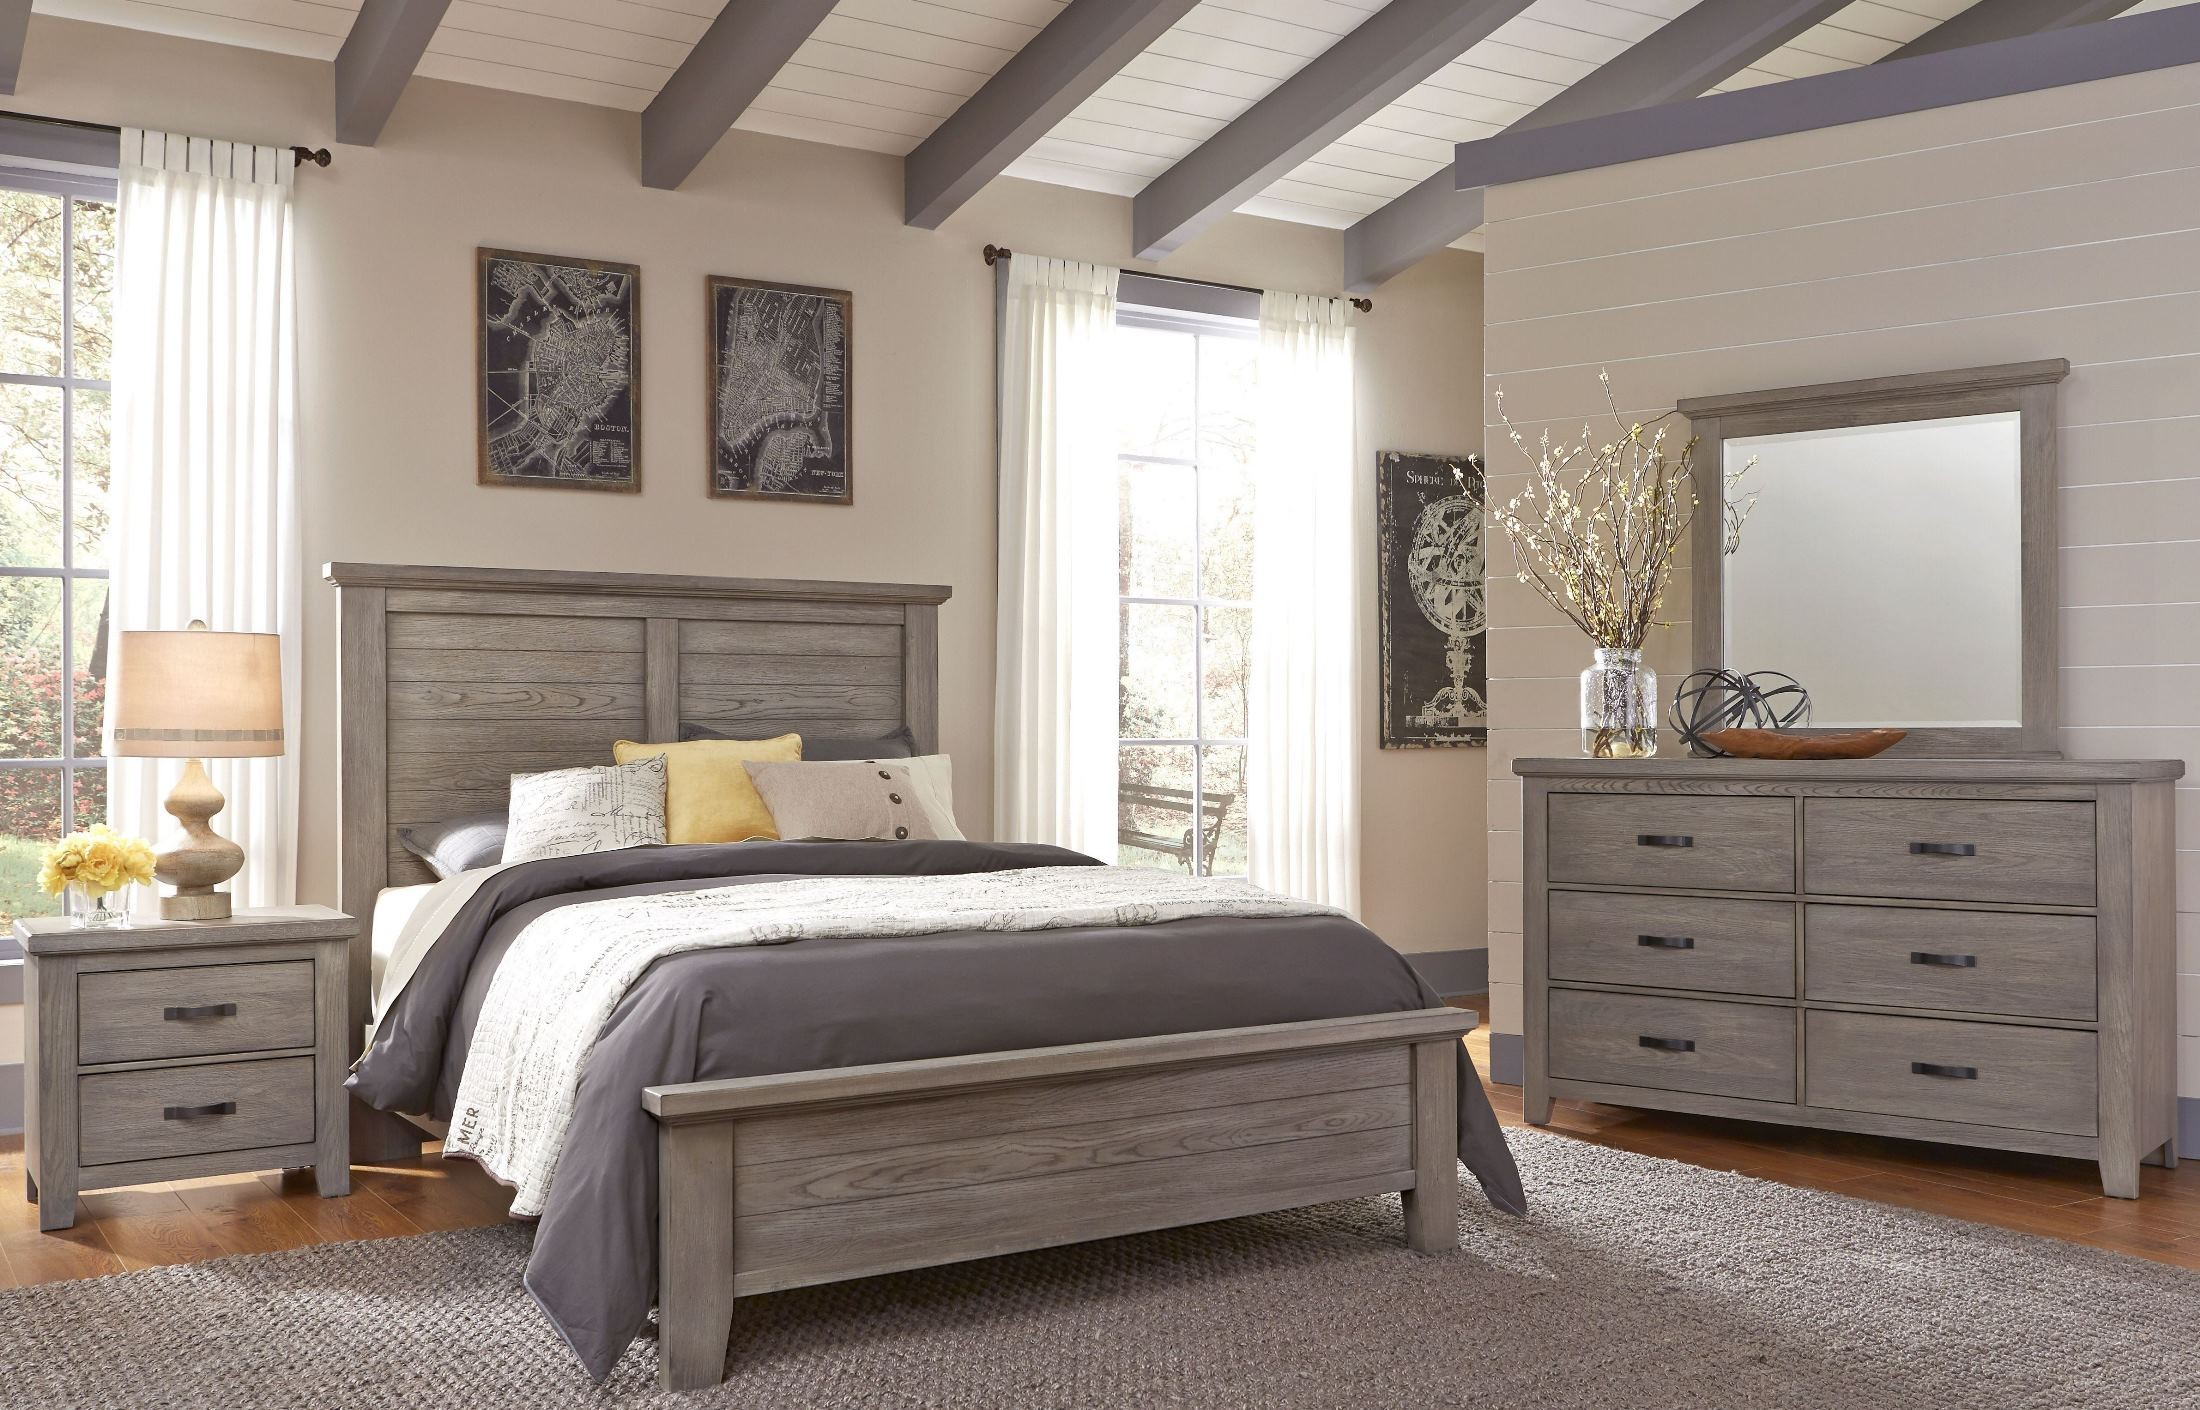 Cassel Park Weathered Gray Plank Bedroom Set from Virginia House